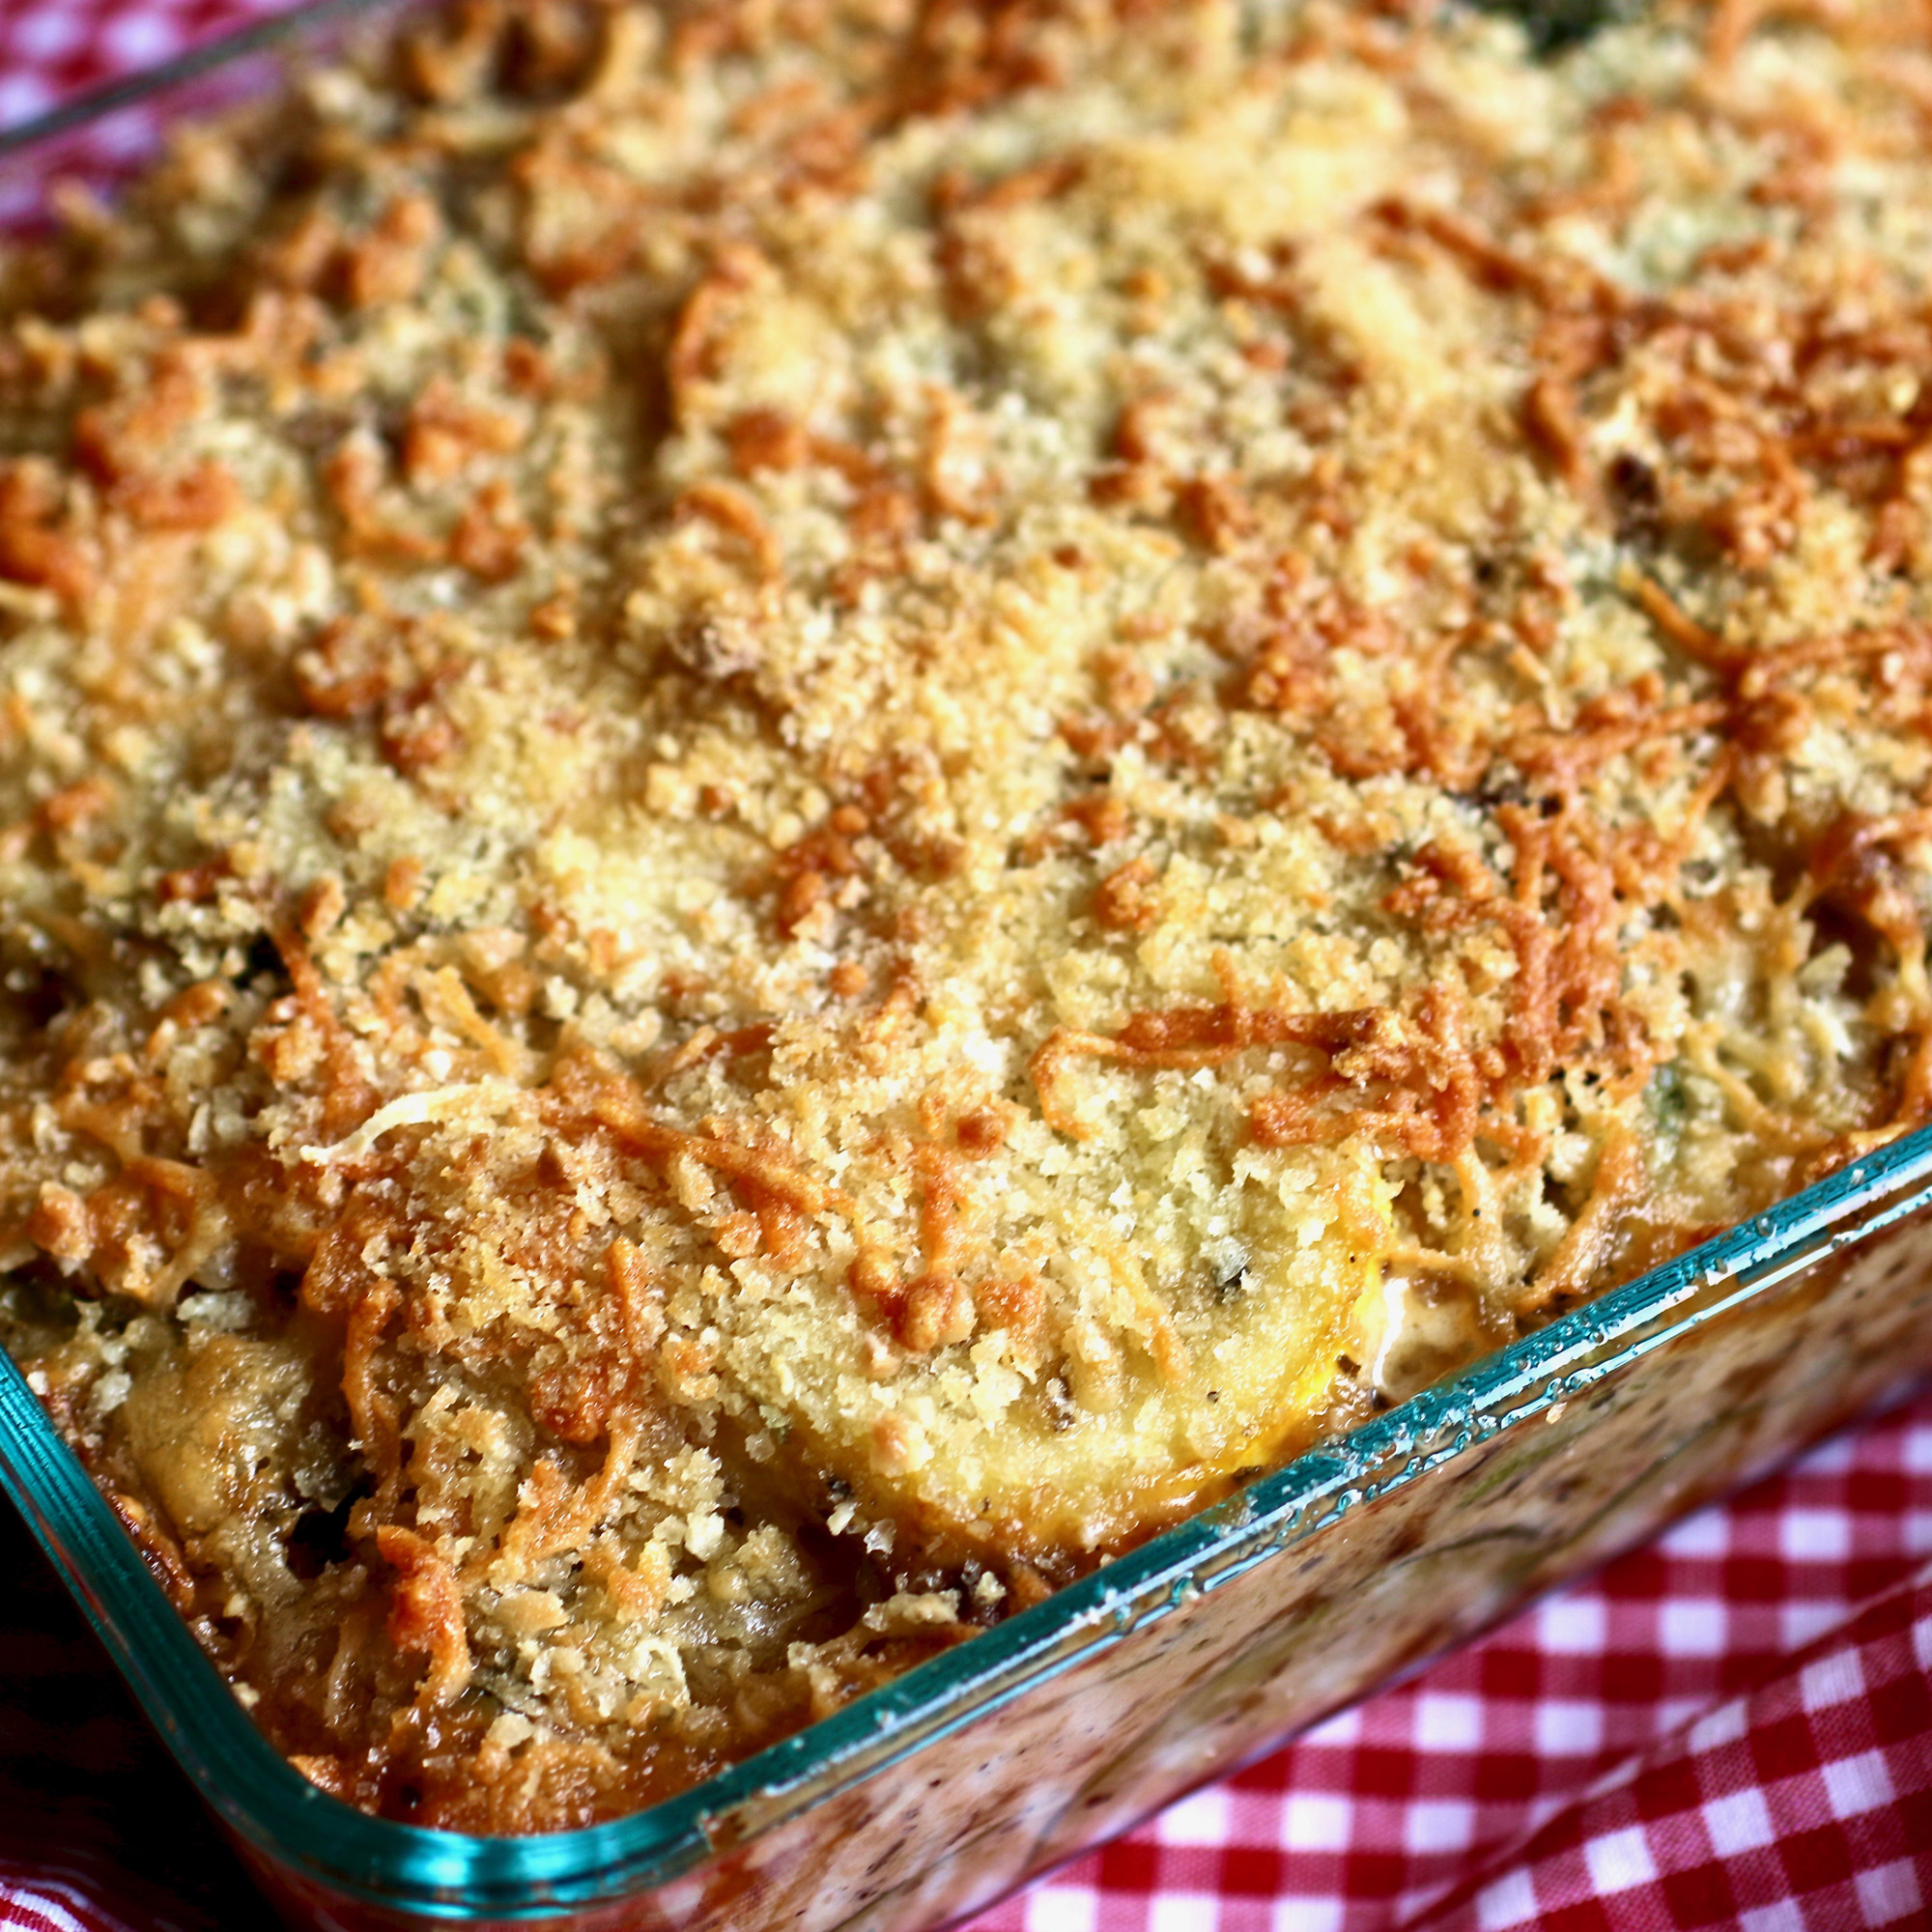 gratin in glass casserole dish on picnic blanket